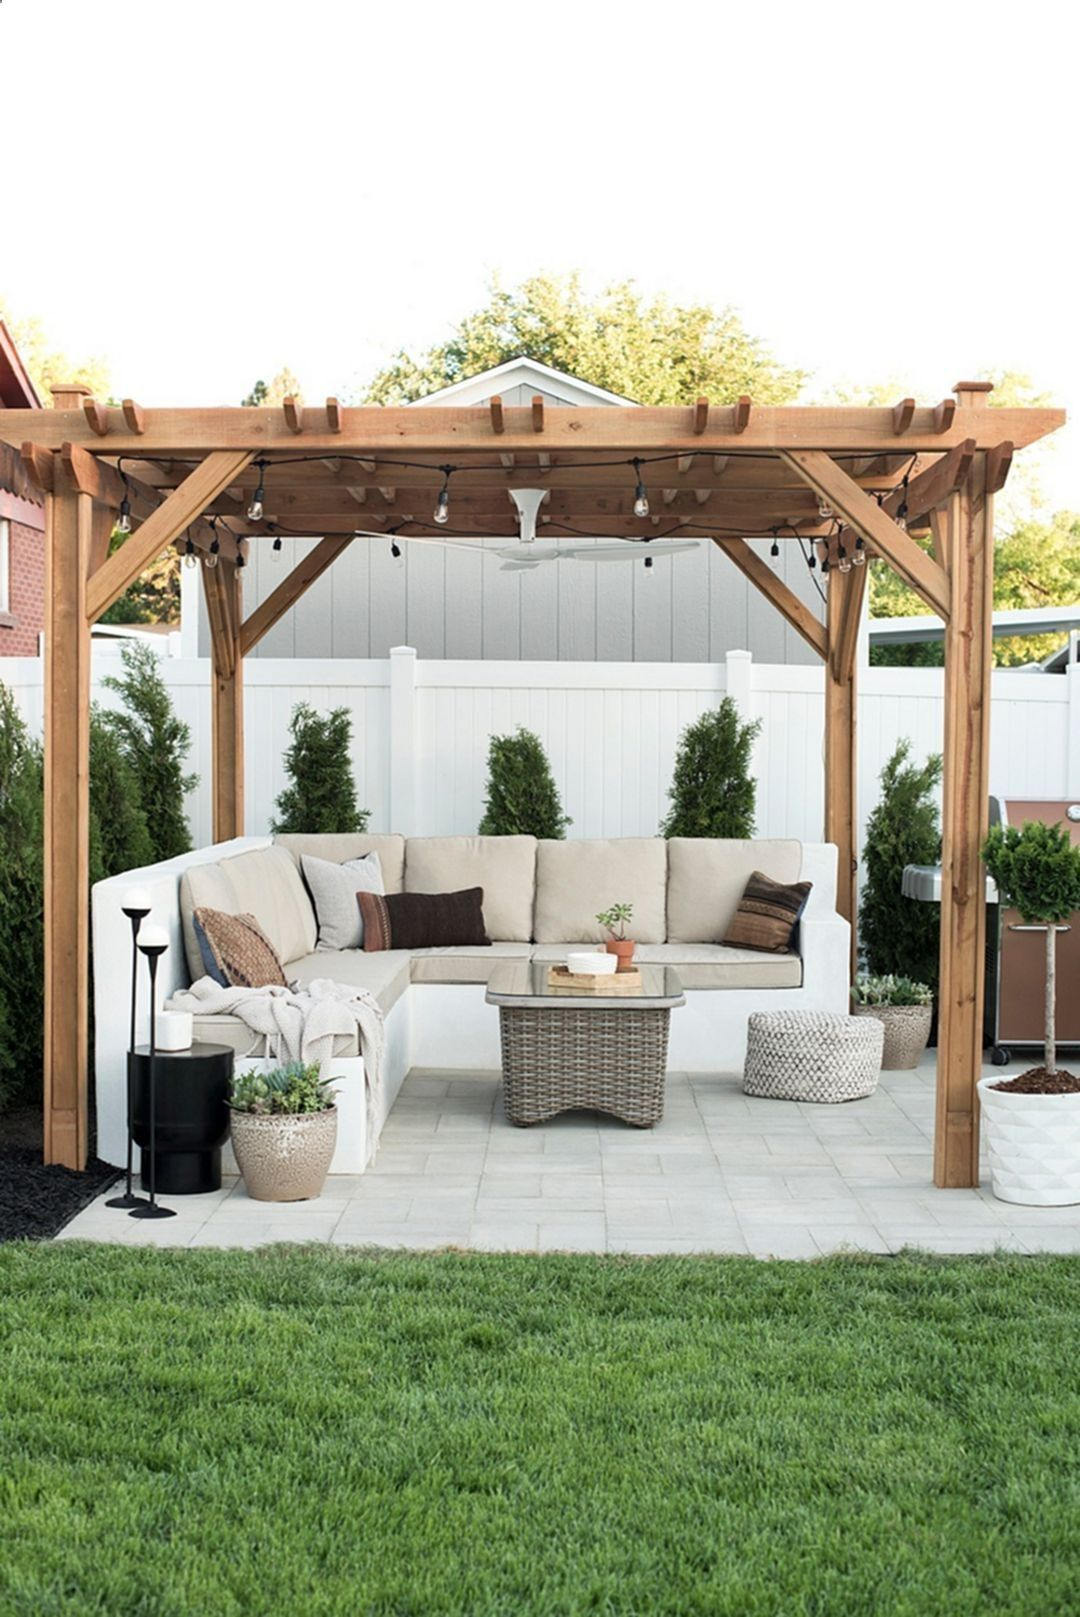 Shed DIY - Top 40 Incredible Backyard Retreat Shed Makeover Design Ideas  decorathing.com/... Now You Can Build ANY Shed In A Weekend Even If You've  Zero ... - Shed DIY - Top 40 Incredible Backyard Retreat Shed Makeover Design